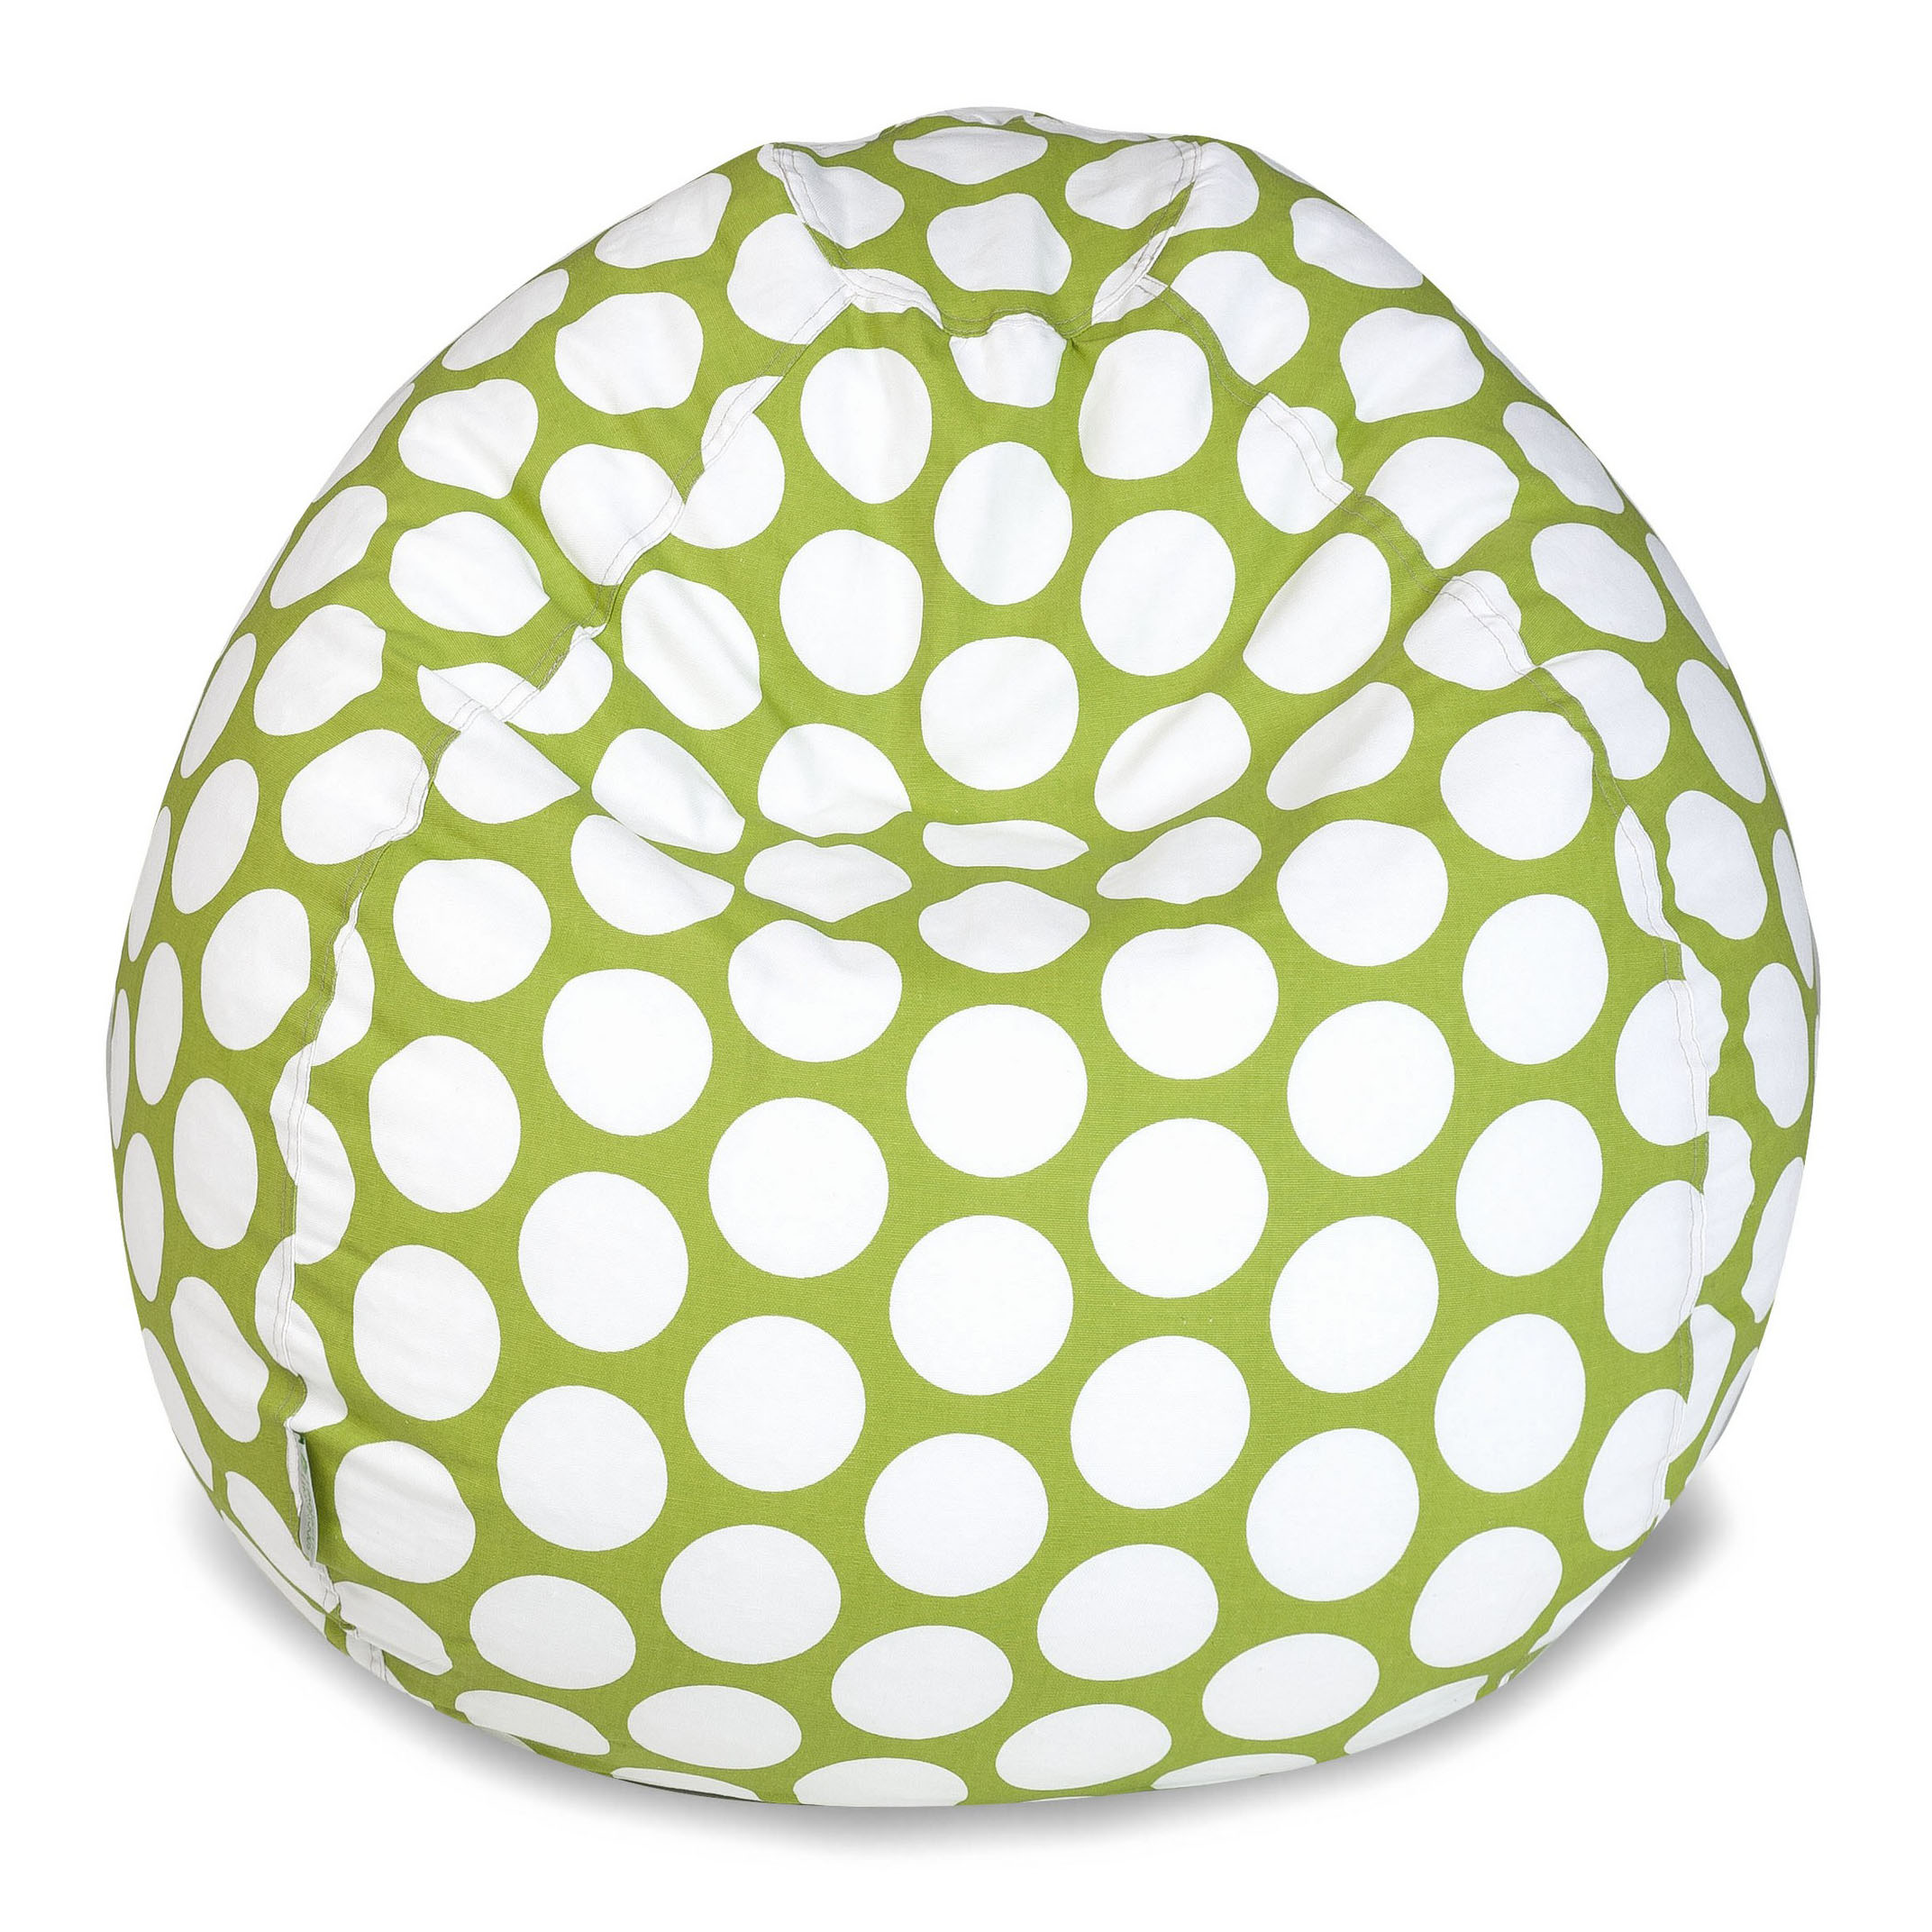 Majestic Home Goods Indoor Hot Green Large Polka Dot Classic Bean Bag Chair 28 in L x 28 in W x 22 in H